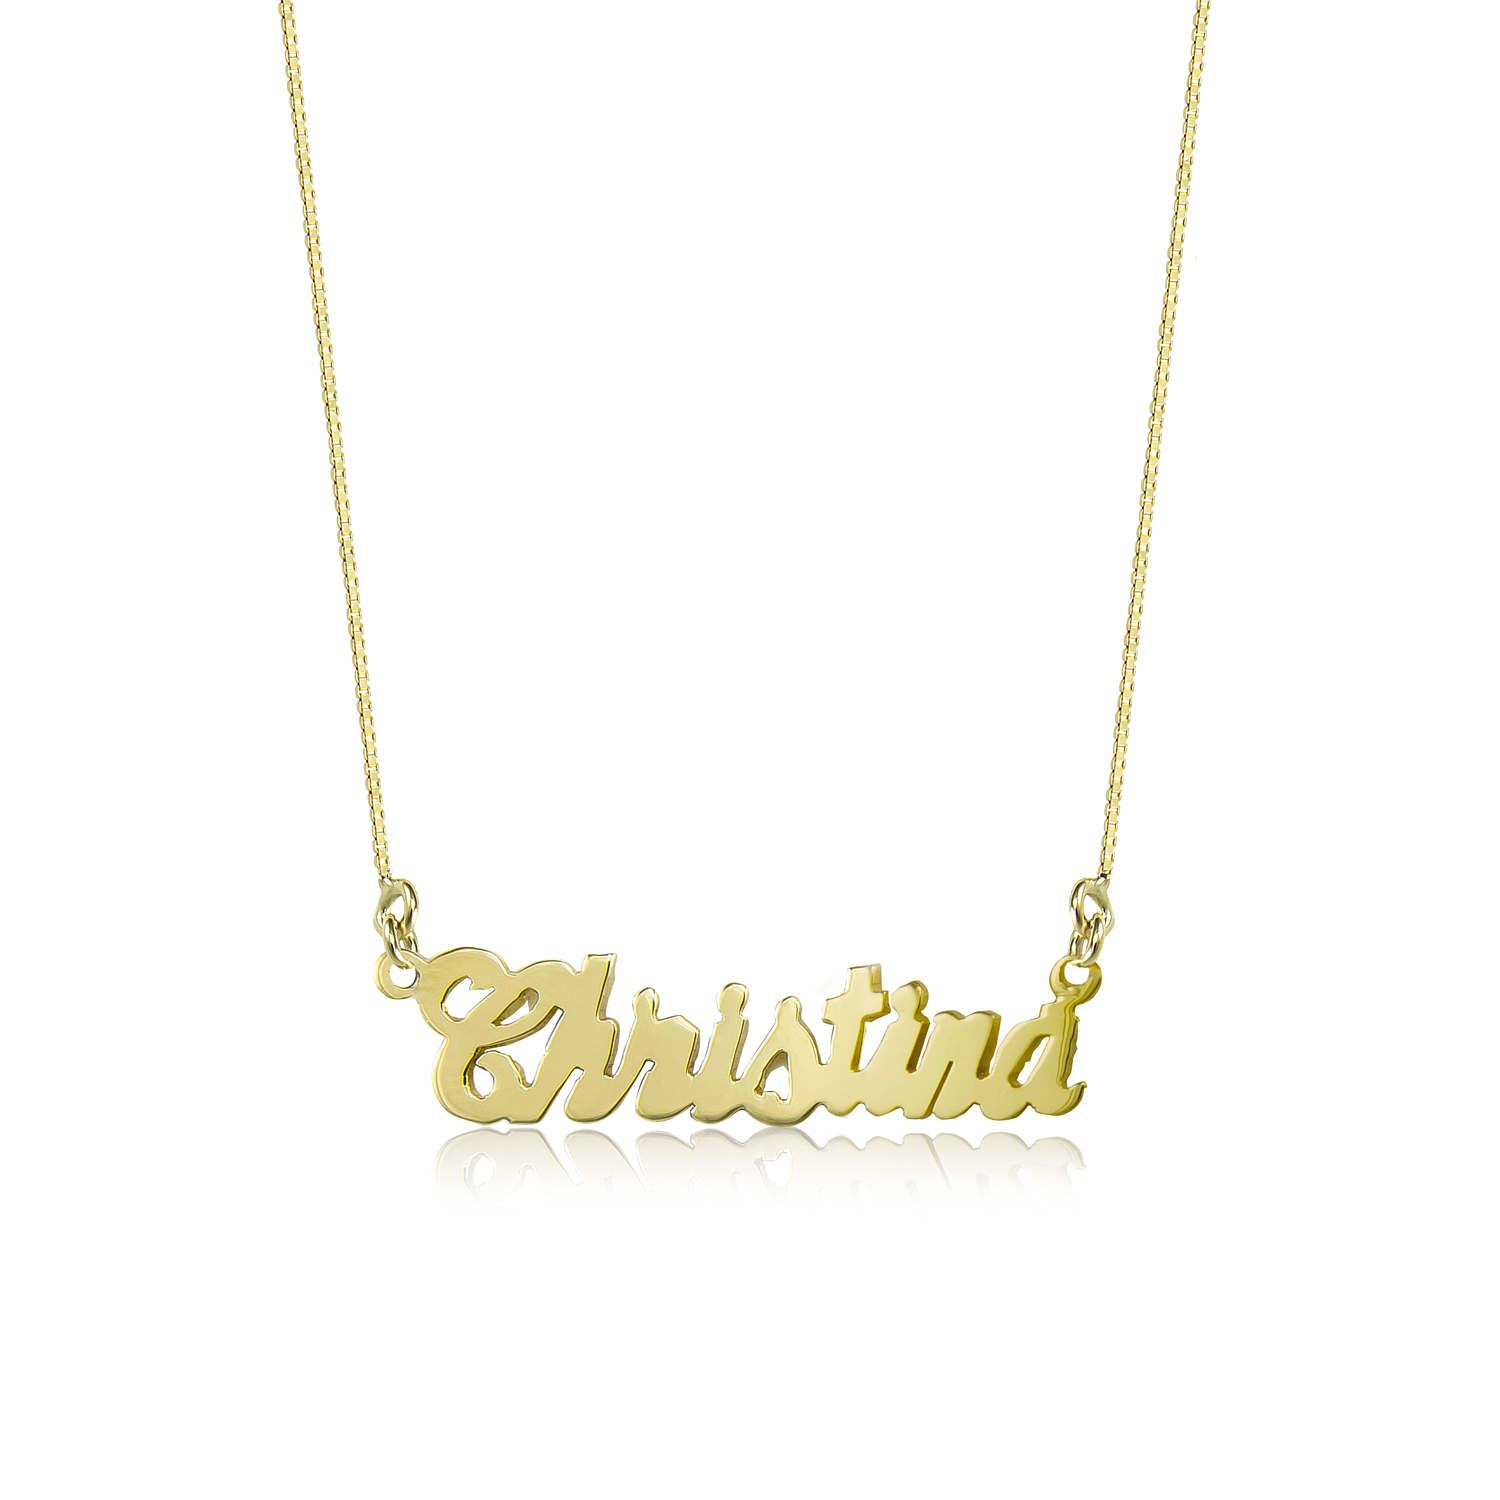 10k Solid Yellow Gold Personalized Name Necklace Pendant Box Chain Description Material Genuine 10k Solid Yellow Gold Necklace Gold Yellow Gold